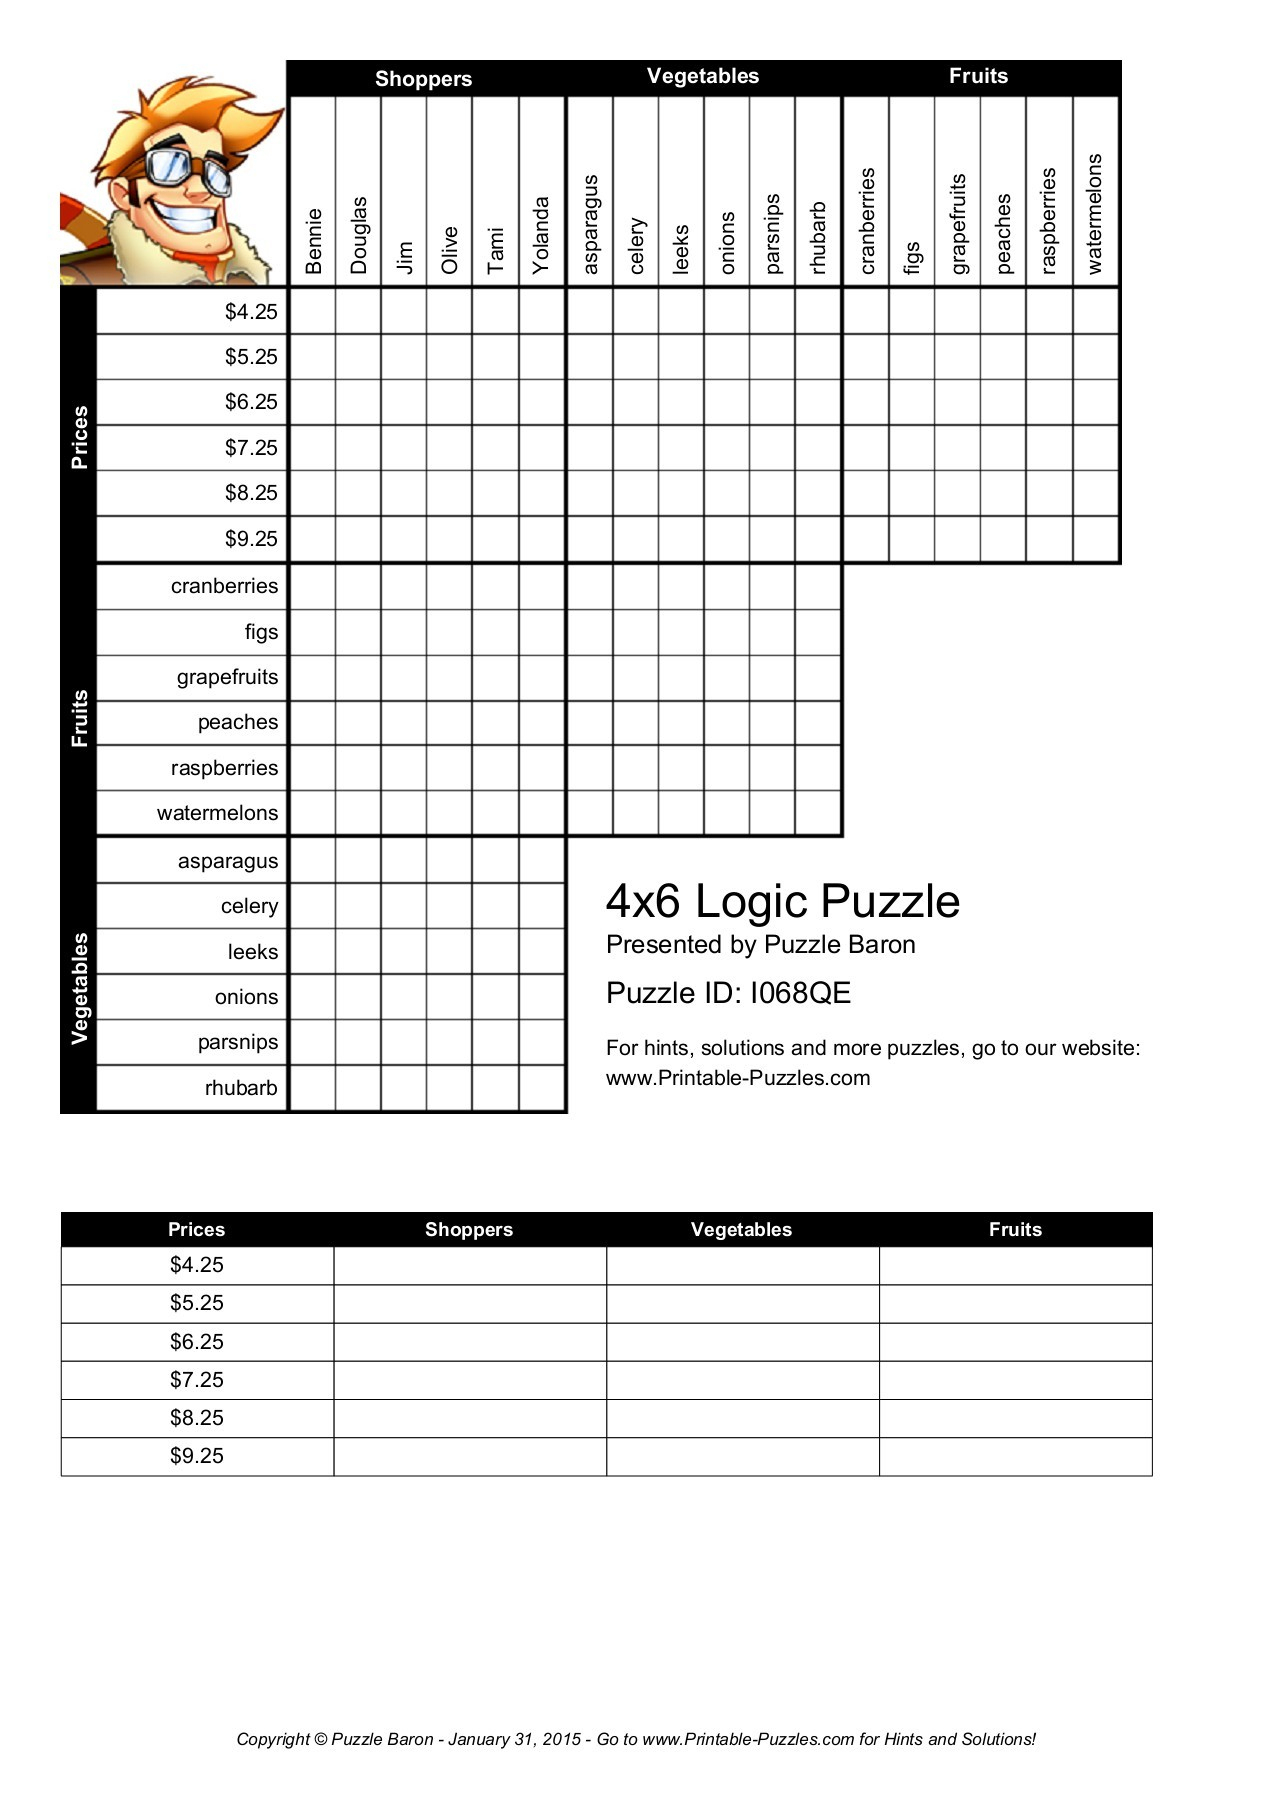 4X6 Logic Puzzle - Logic Puzzles - Play Online Or Print  Pages 1 - Printable Logic Puzzles Puzzle Baron